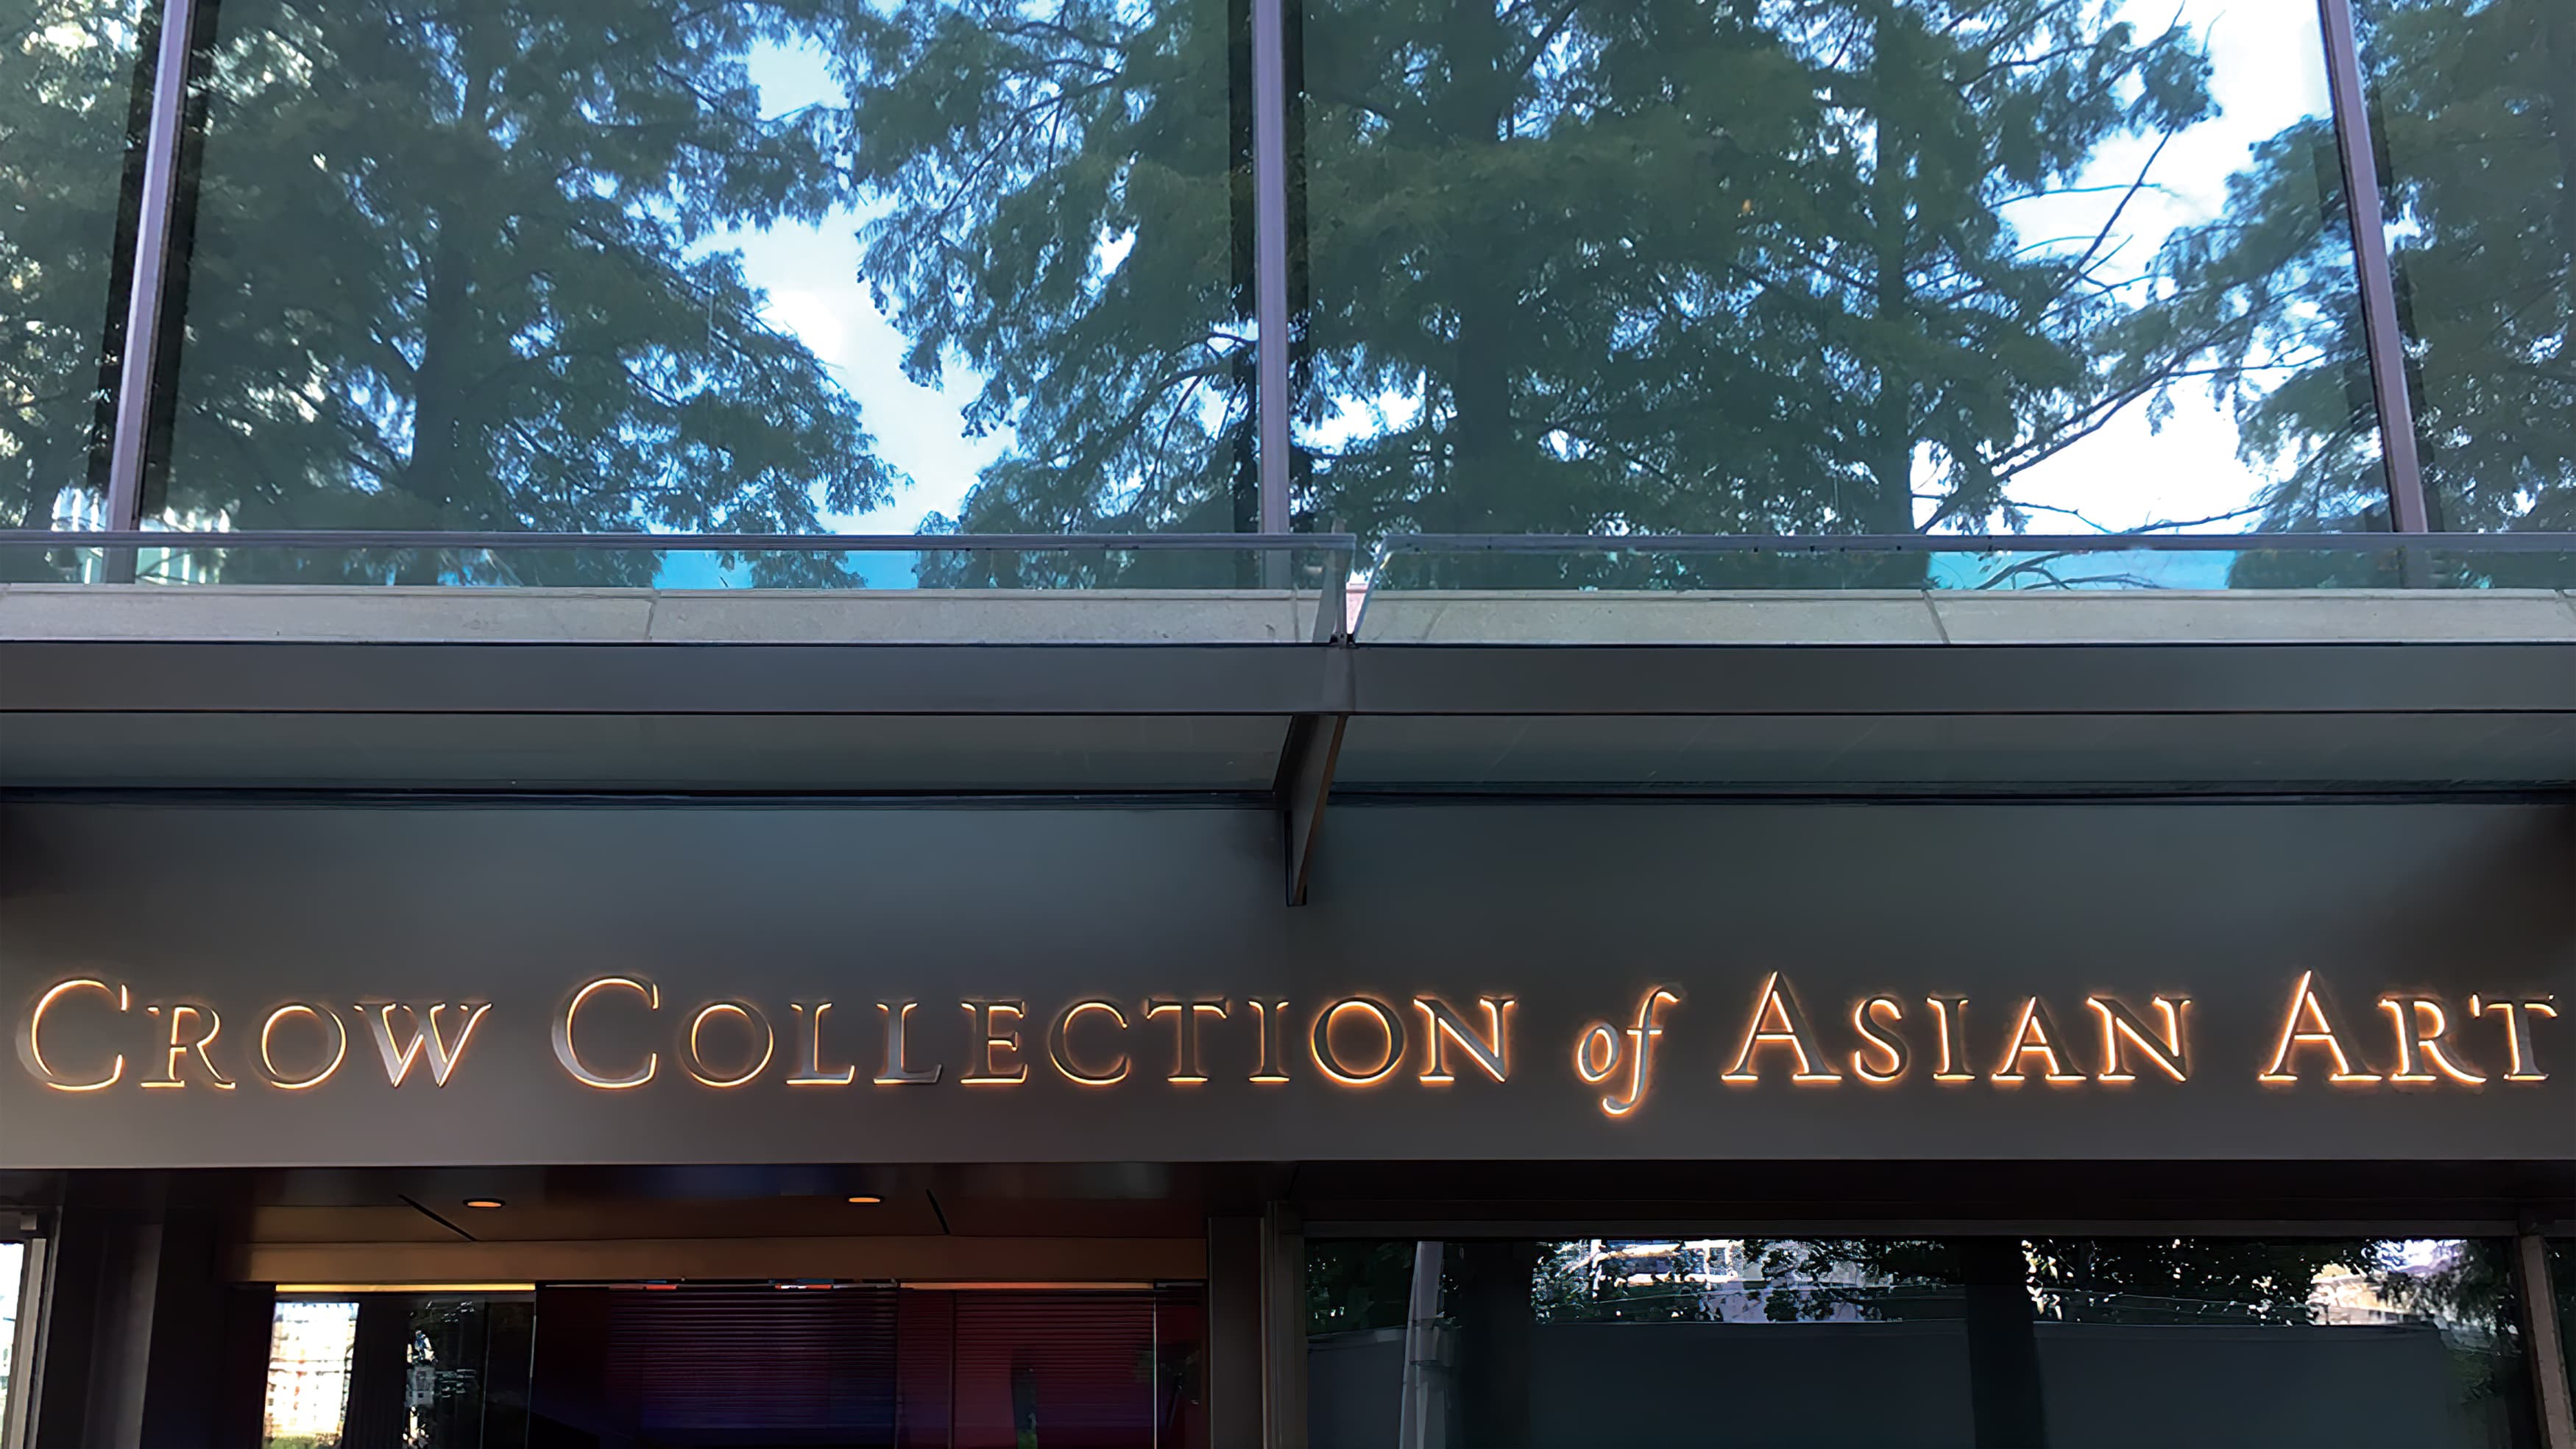 The Crow Collection of Asian Art back-lit identity signage